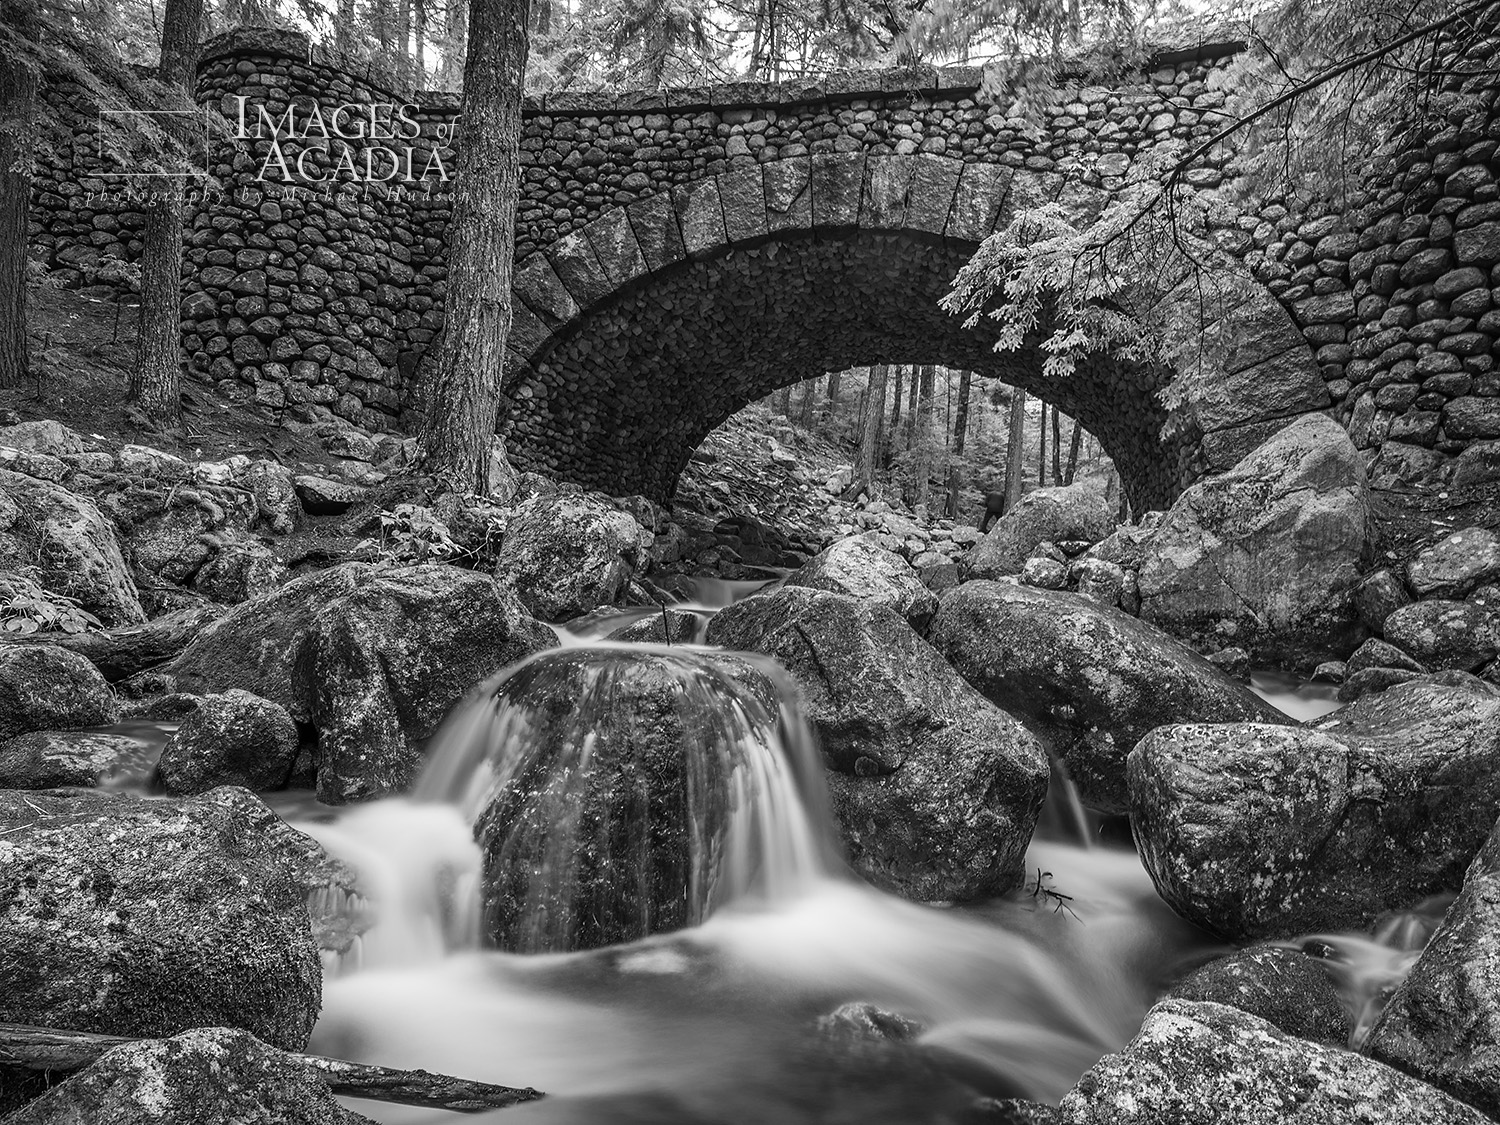 Cobblestone Bridge and Jordan Stream, Acadia National Park, Main